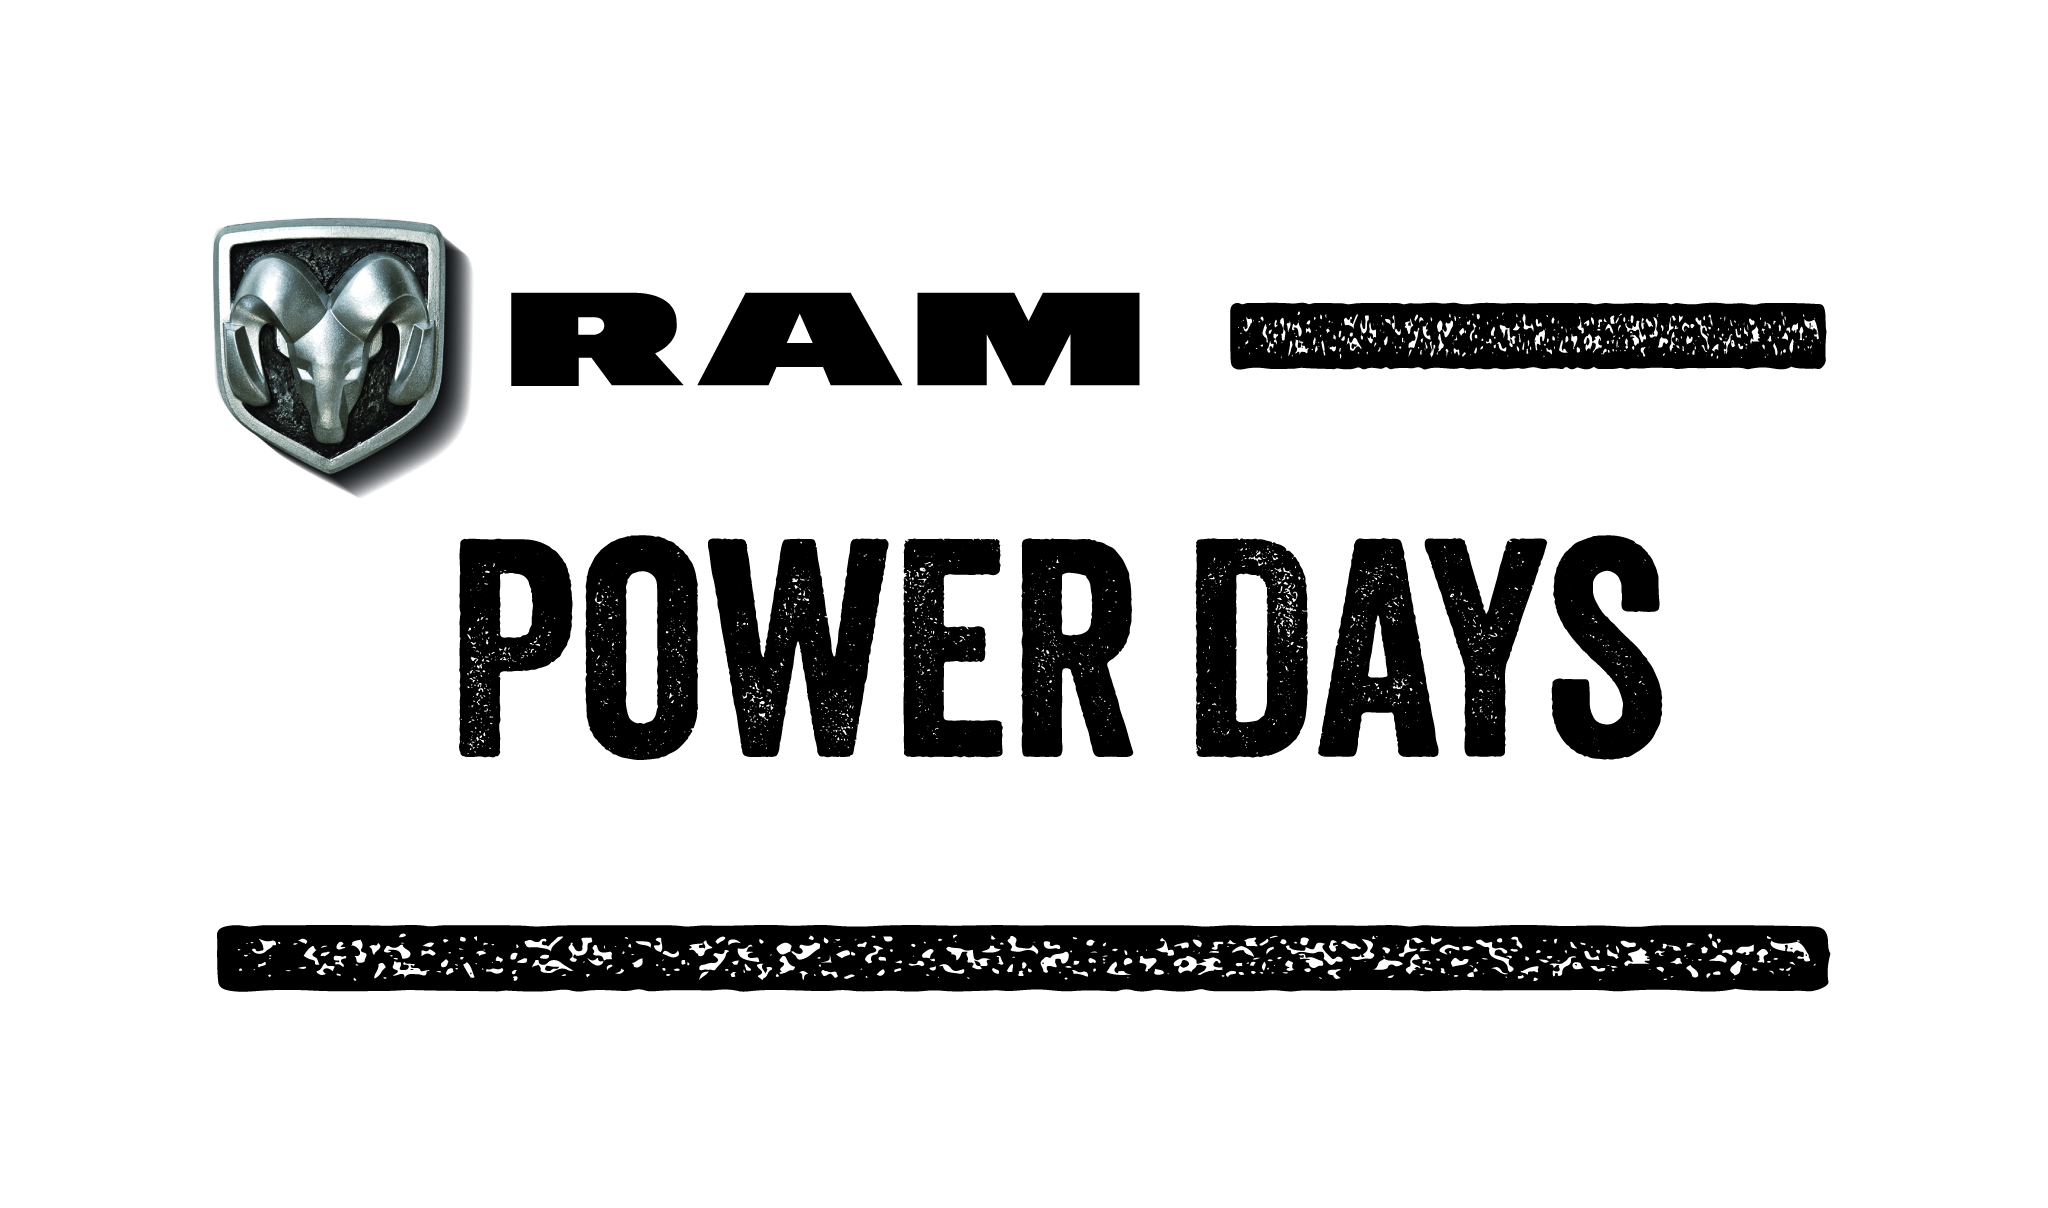 Ram Power Days in  Preston, ID